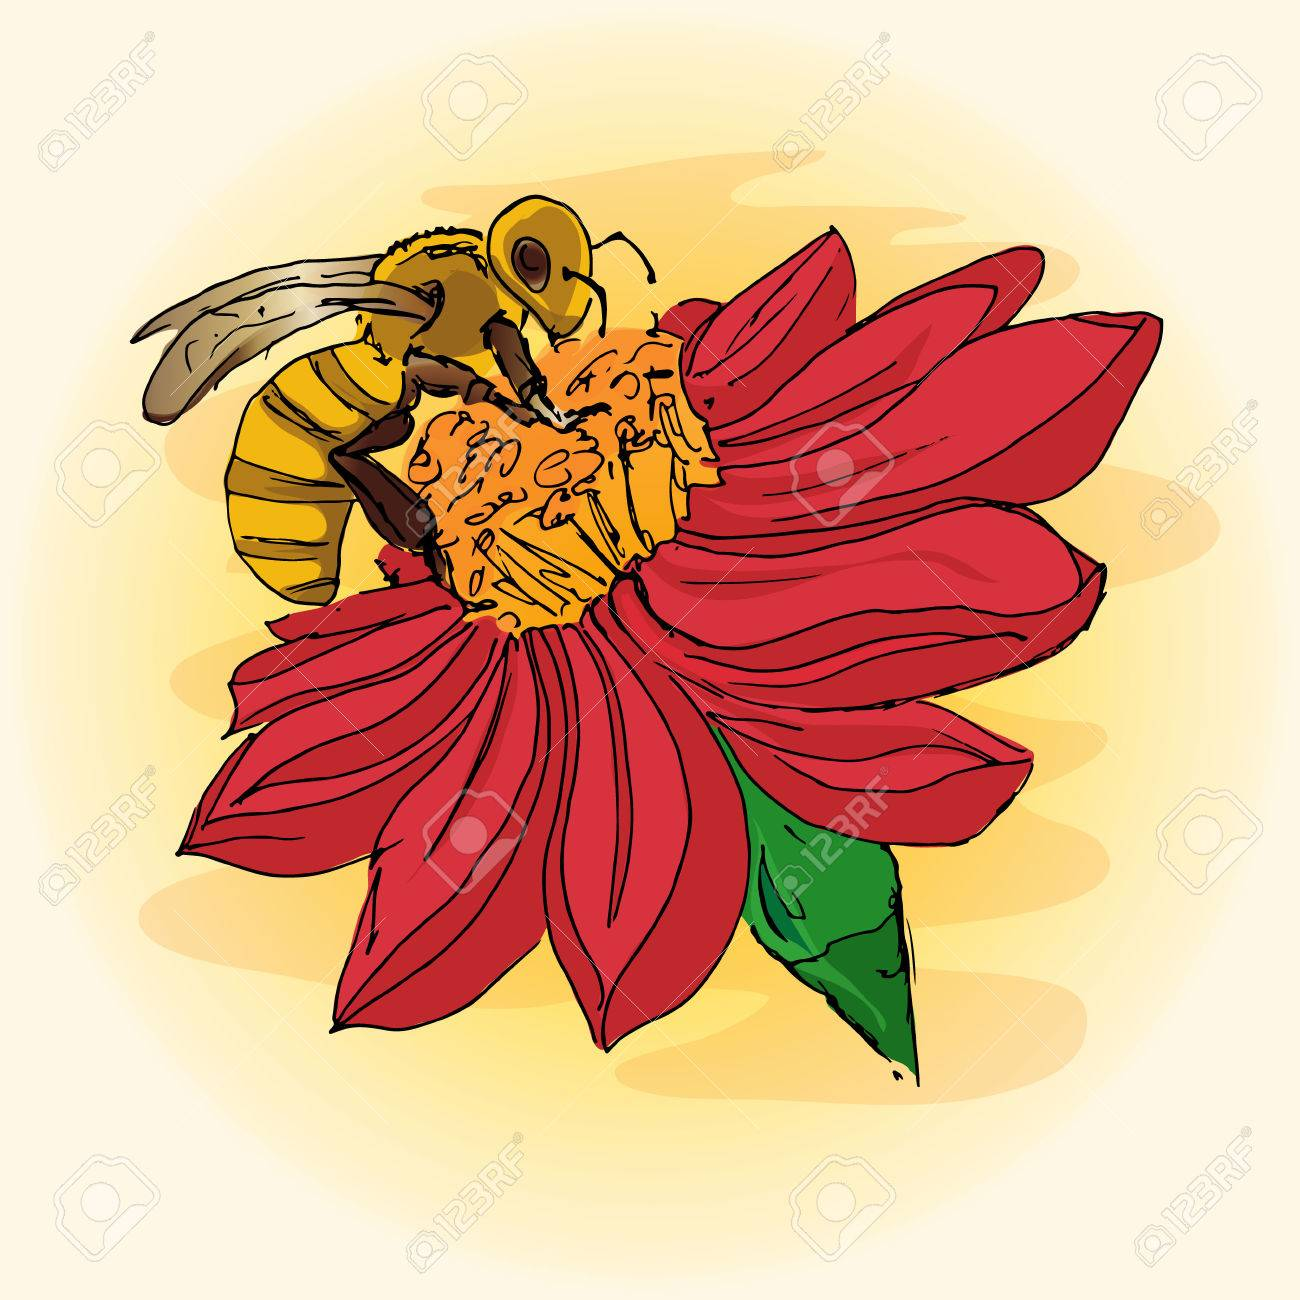 Bee On Flower Drawing at GetDrawings.com | Free for personal use Bee ...